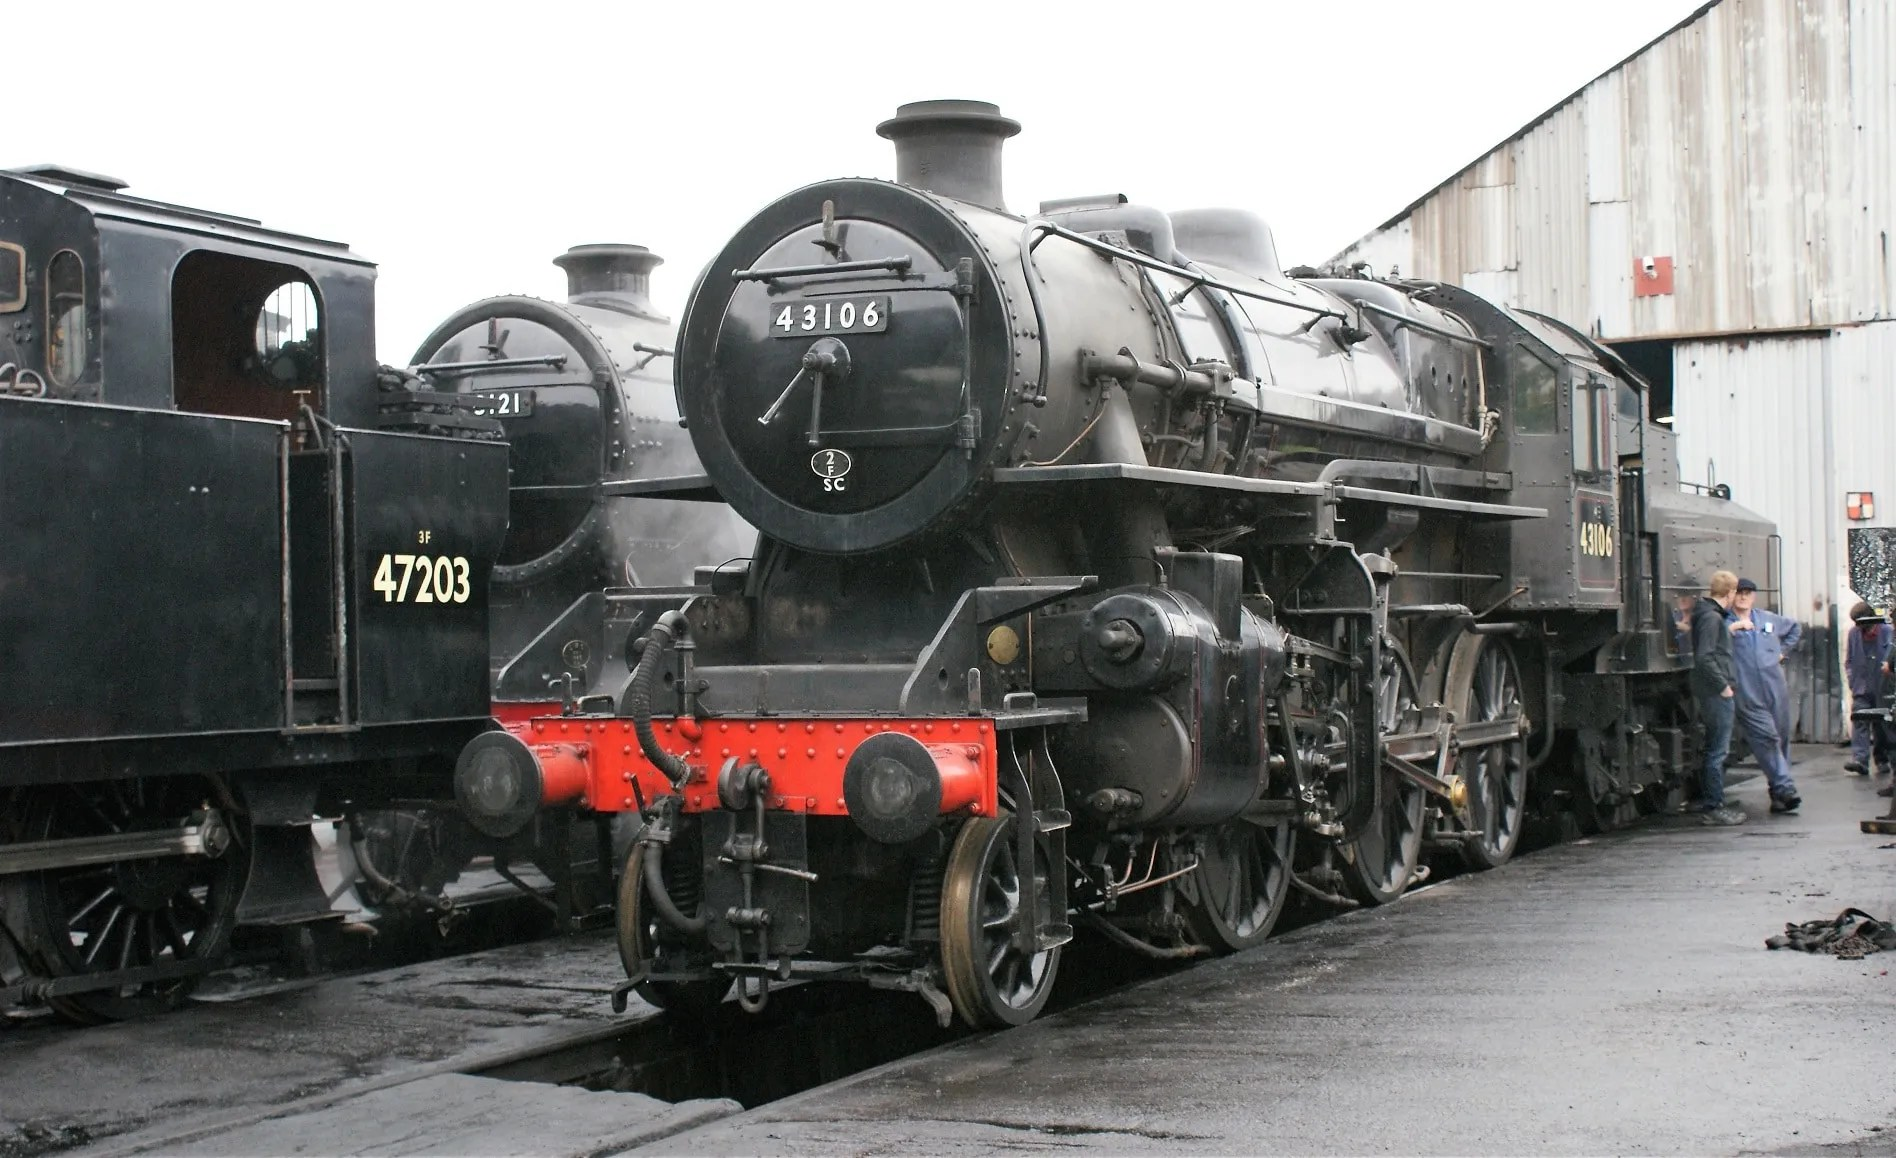 43106 - LMS Ivatt Class 4 - great central railway